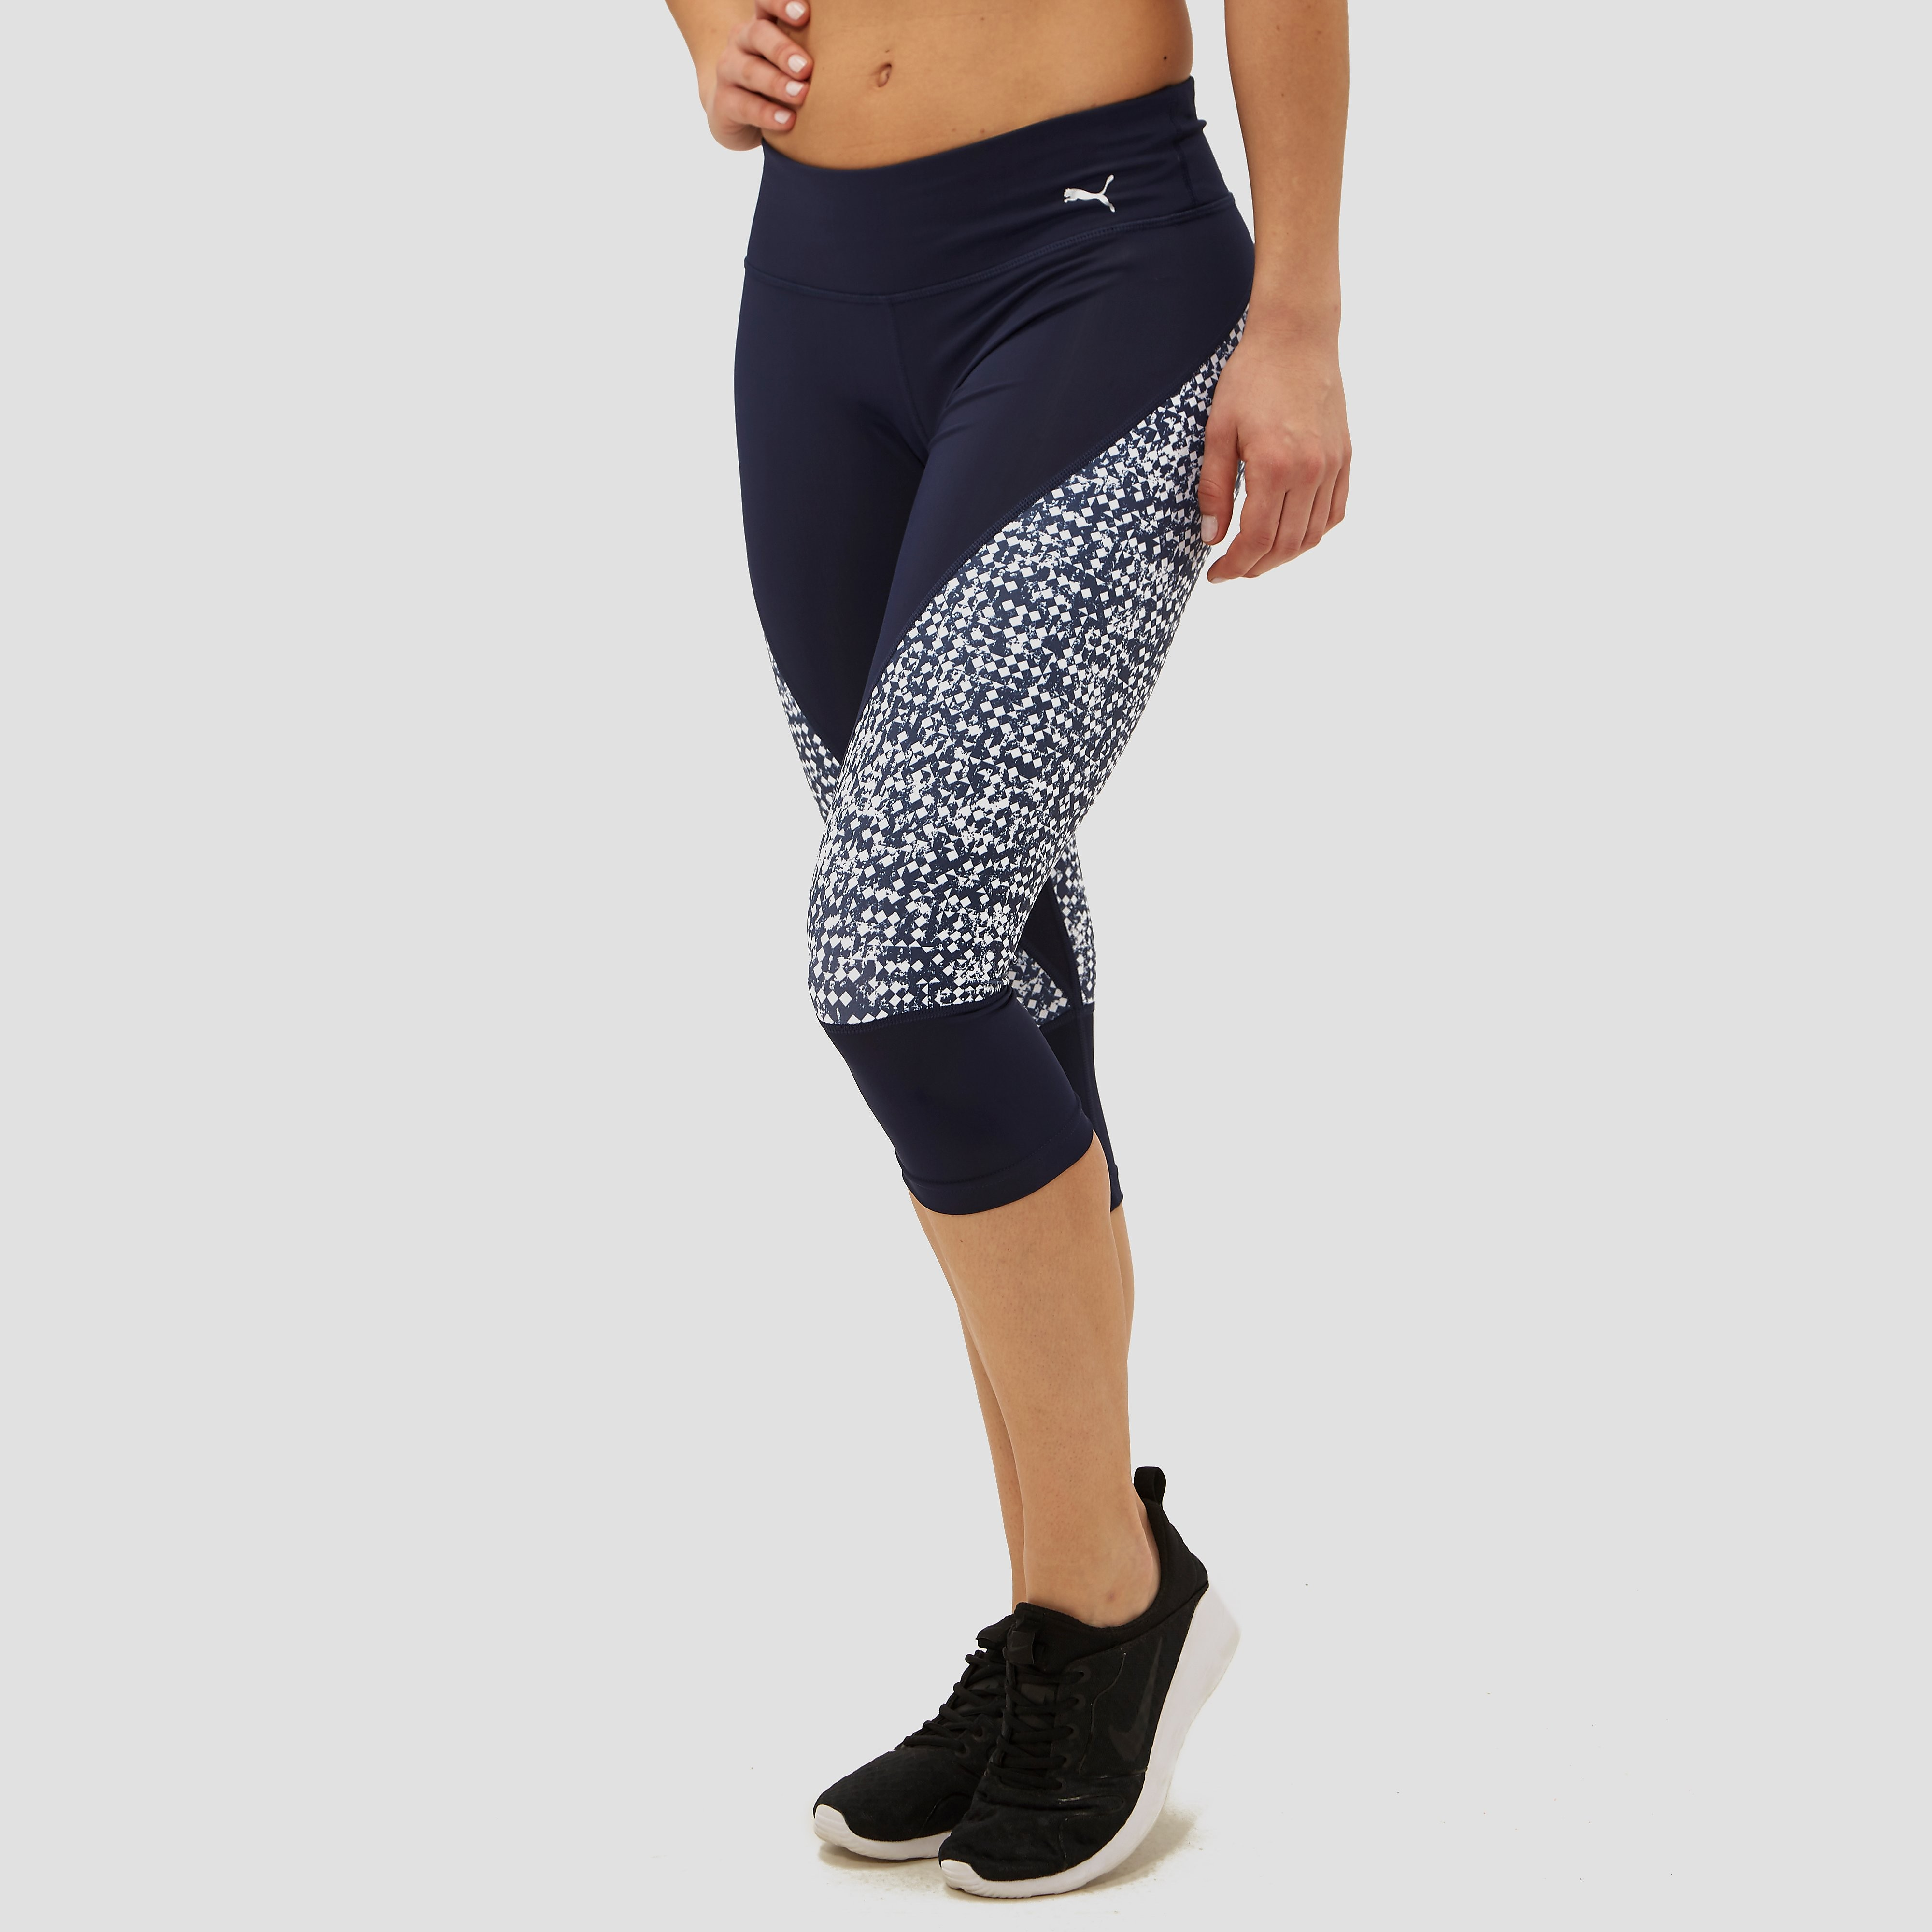 PUMA ACTIVE CULTURE SURF 3/4-TIGHT DAMES